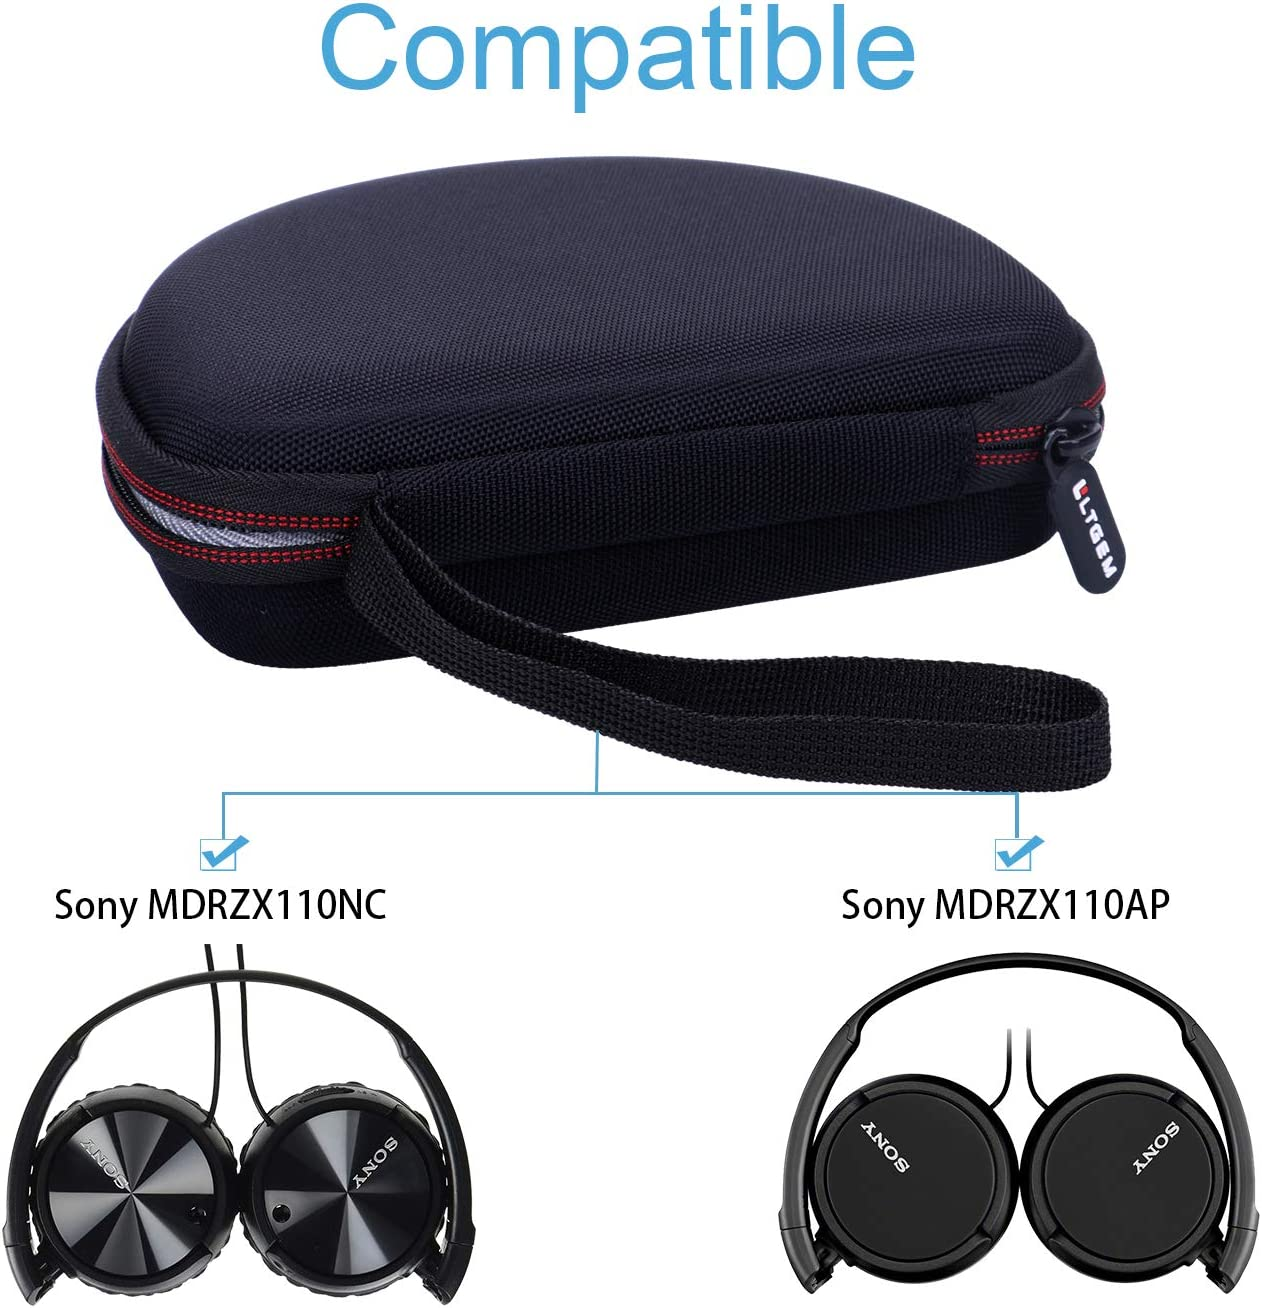 LTGEM EVA Hard Case for Sony MDRZX110NC /& MDRZX110AP Noise Cancelling Headphones Travel Protective Carrying Storage Bag